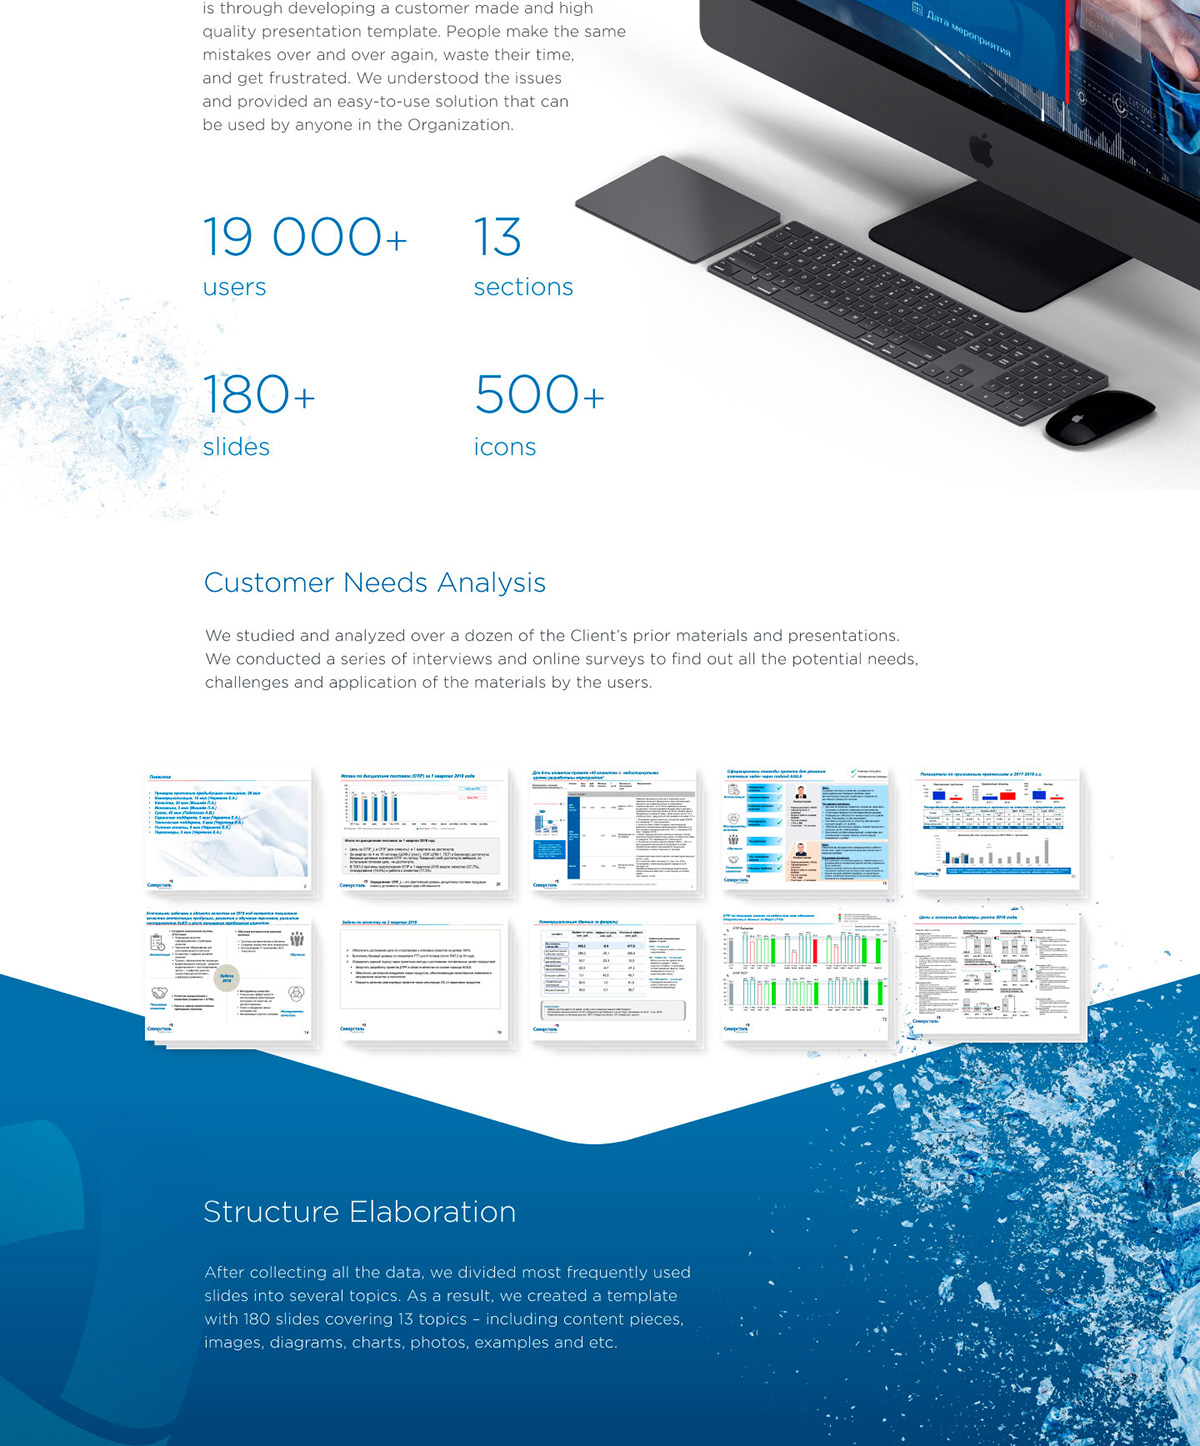 Corporate Presentation Template For Severstal On Aiga Member Gallery